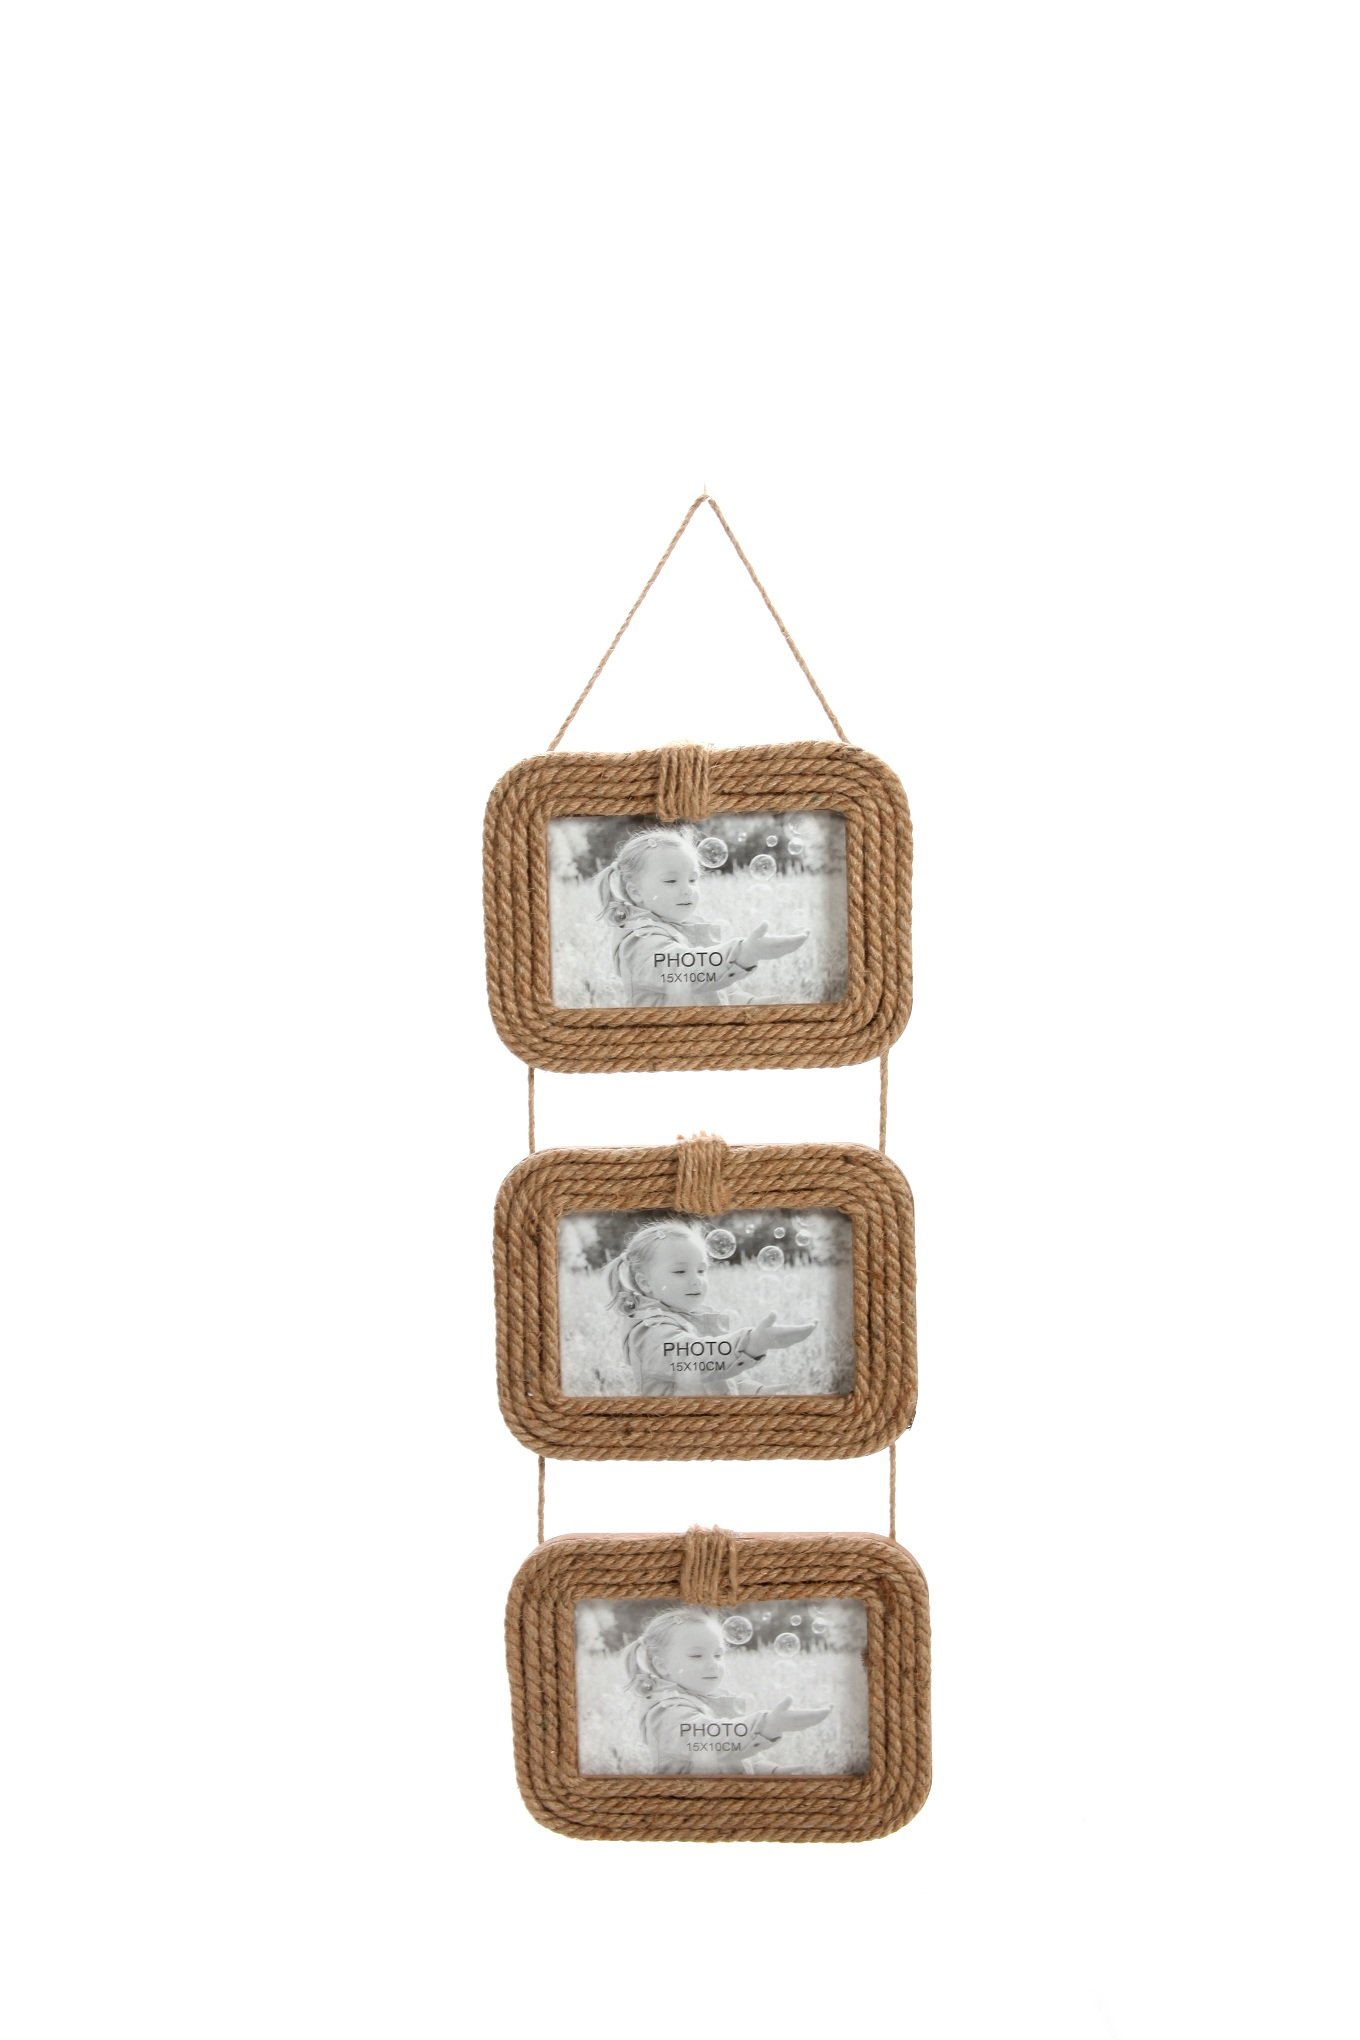 Hosley Jute Rope Three 4'' x 6'' Photo Frames - 20'' High. Ideal Gift for Wedding or Special Occasion and use for Party, Home/Office, Spa, Bathroom Setting. P2